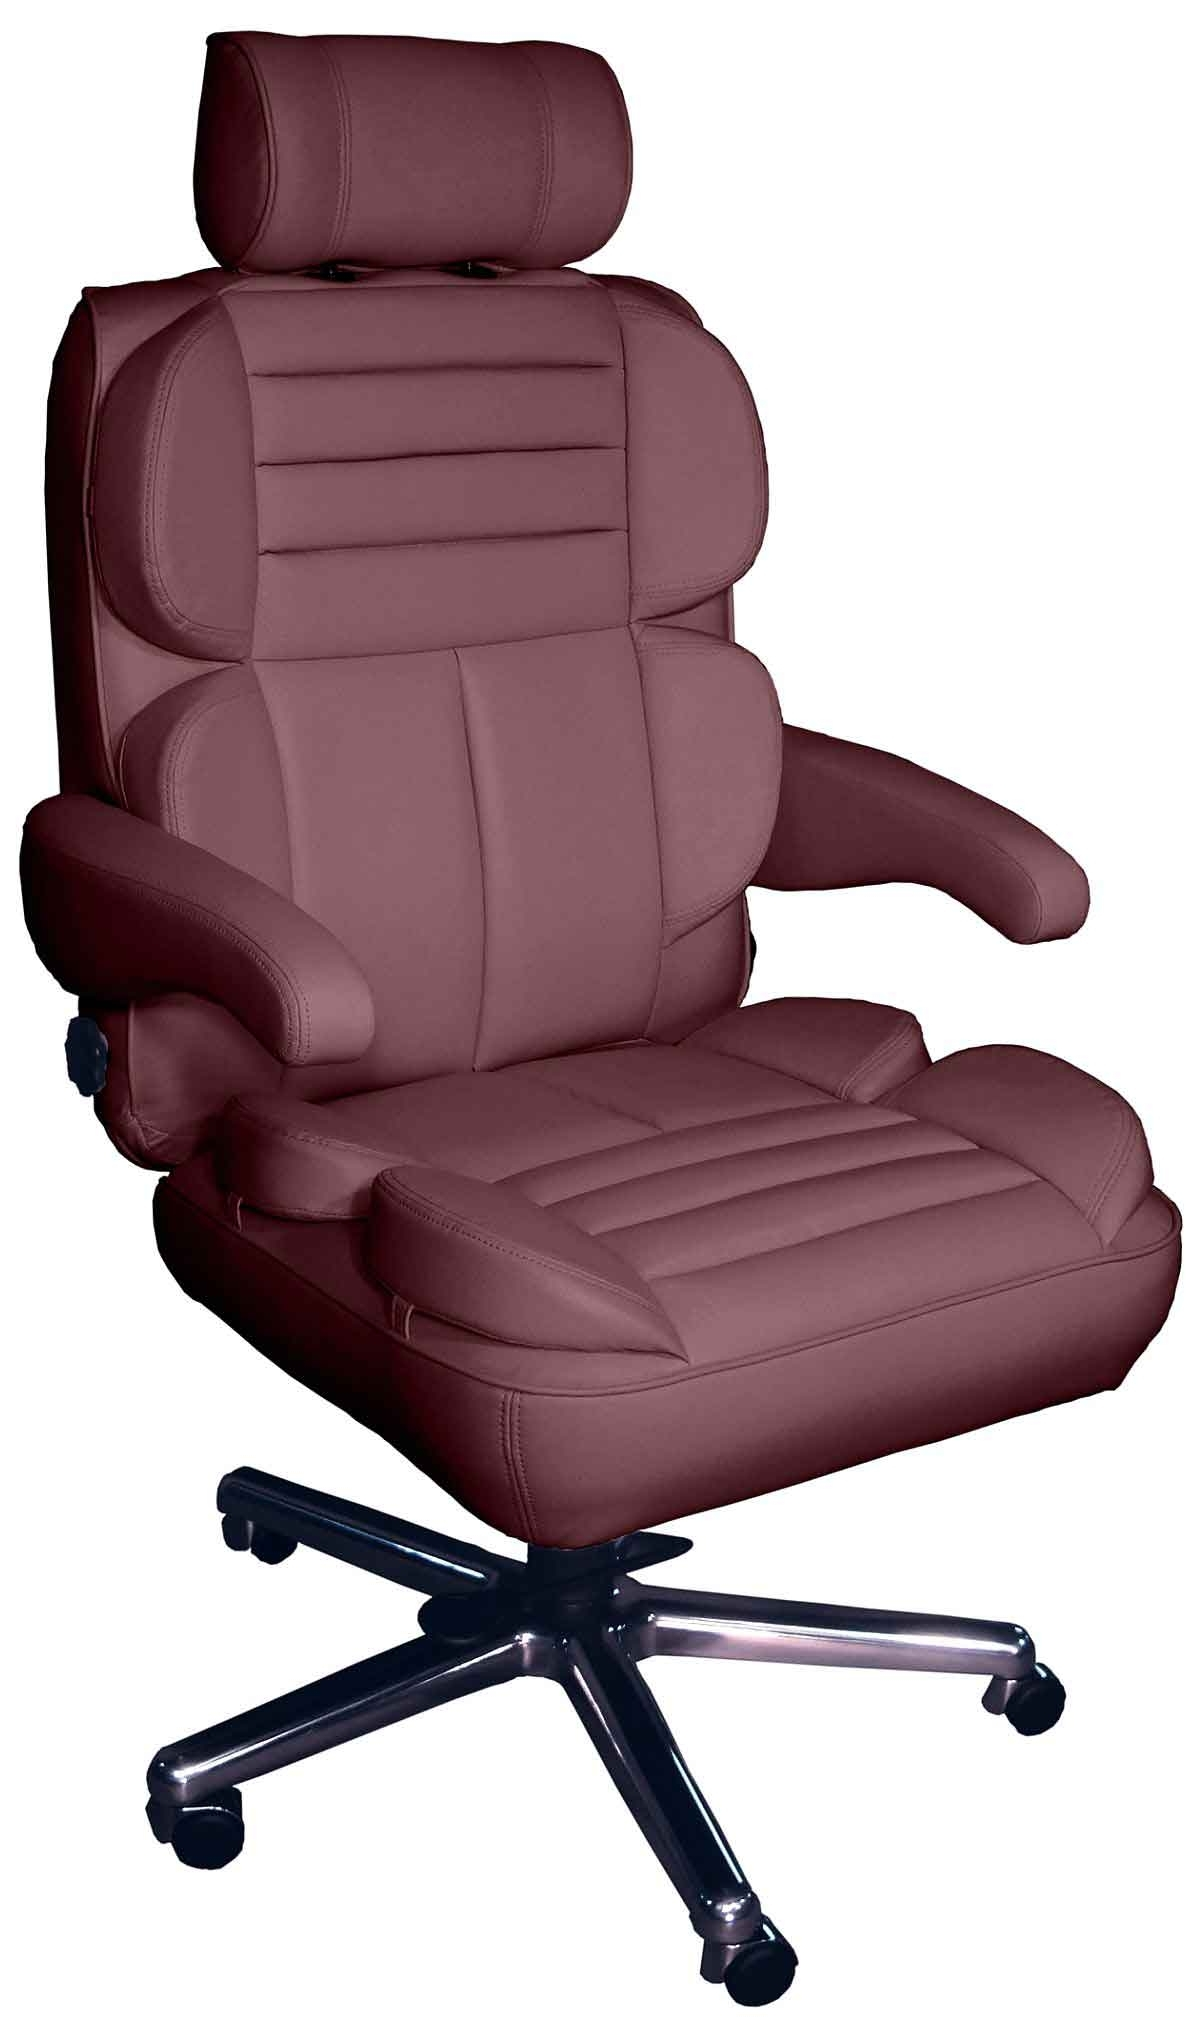 Favorite 12 Big And Tall Office Chairs To Include In Your Office With Regard To Tall Executive Office Chairs (View 5 of 20)